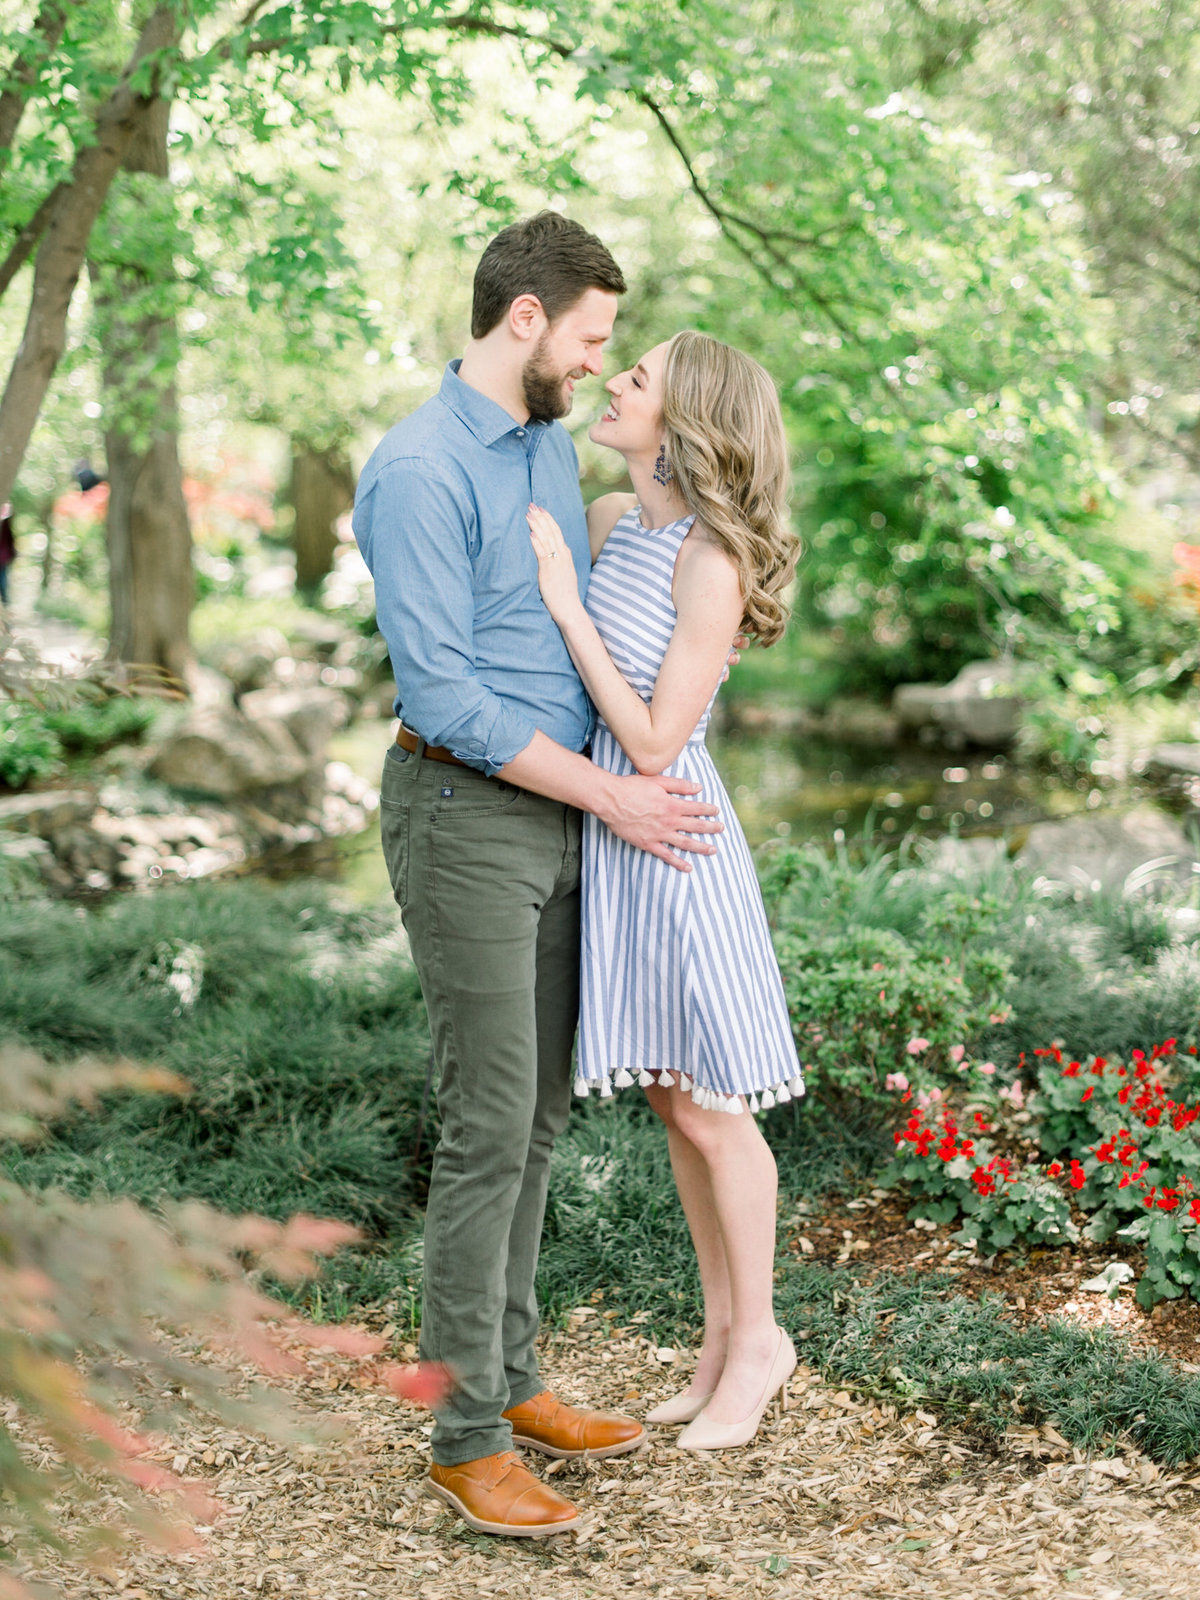 Courtney Hanson Photography - Dallas Spring Engagement Photos at Dallas Arboretum-2570